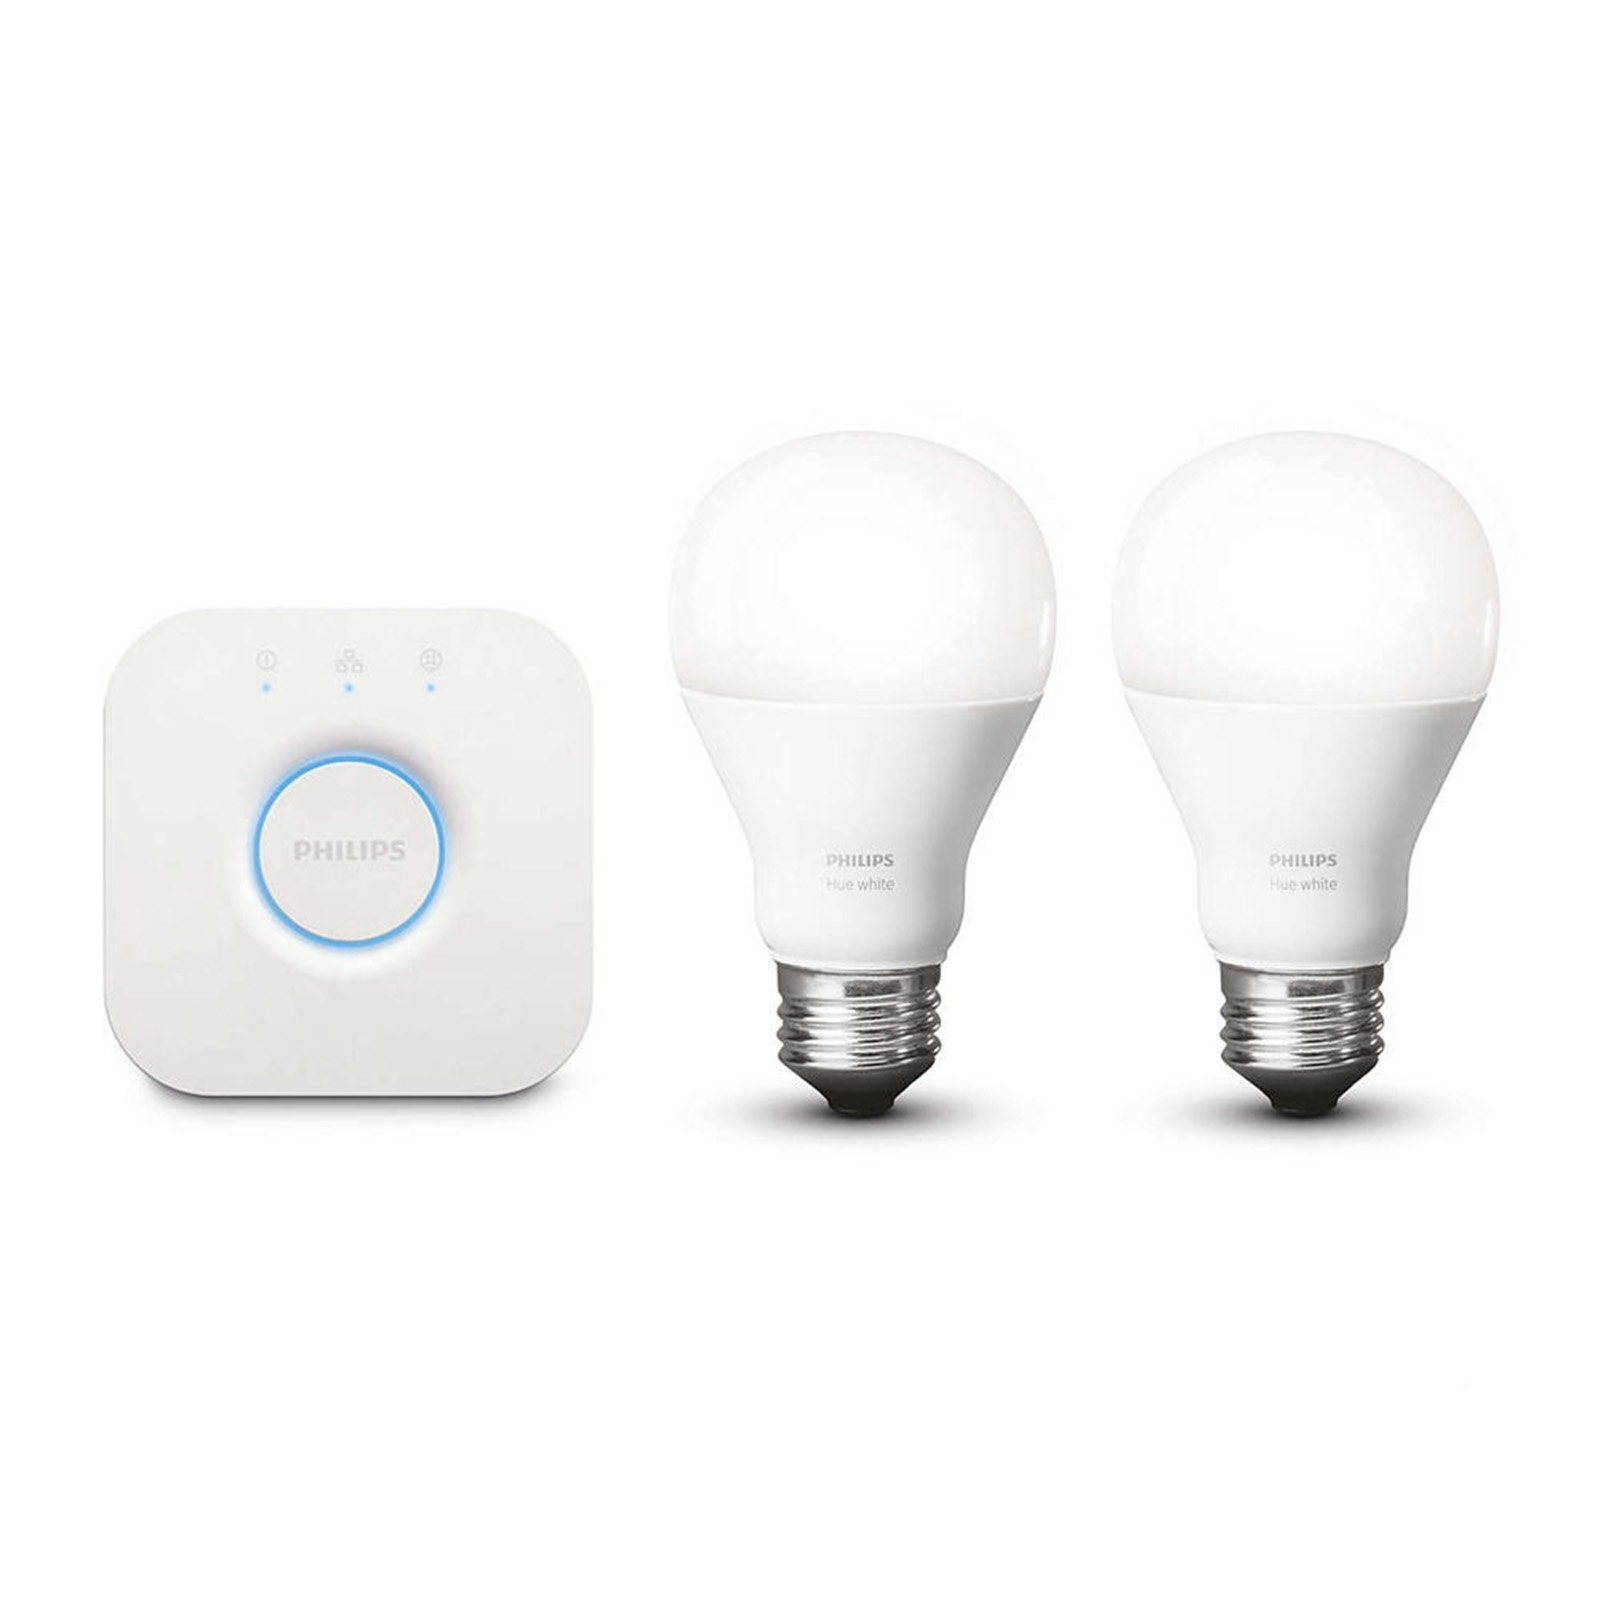 Philips Hue White A19 60W Equivalent Dimmable LED Smart Light Bulb Starter Kit (2 A19 60W White Bulbs and 1 Bridge, Works with Alexa, Apple HomeKit, and Google Assistant (Certified Refurbished)